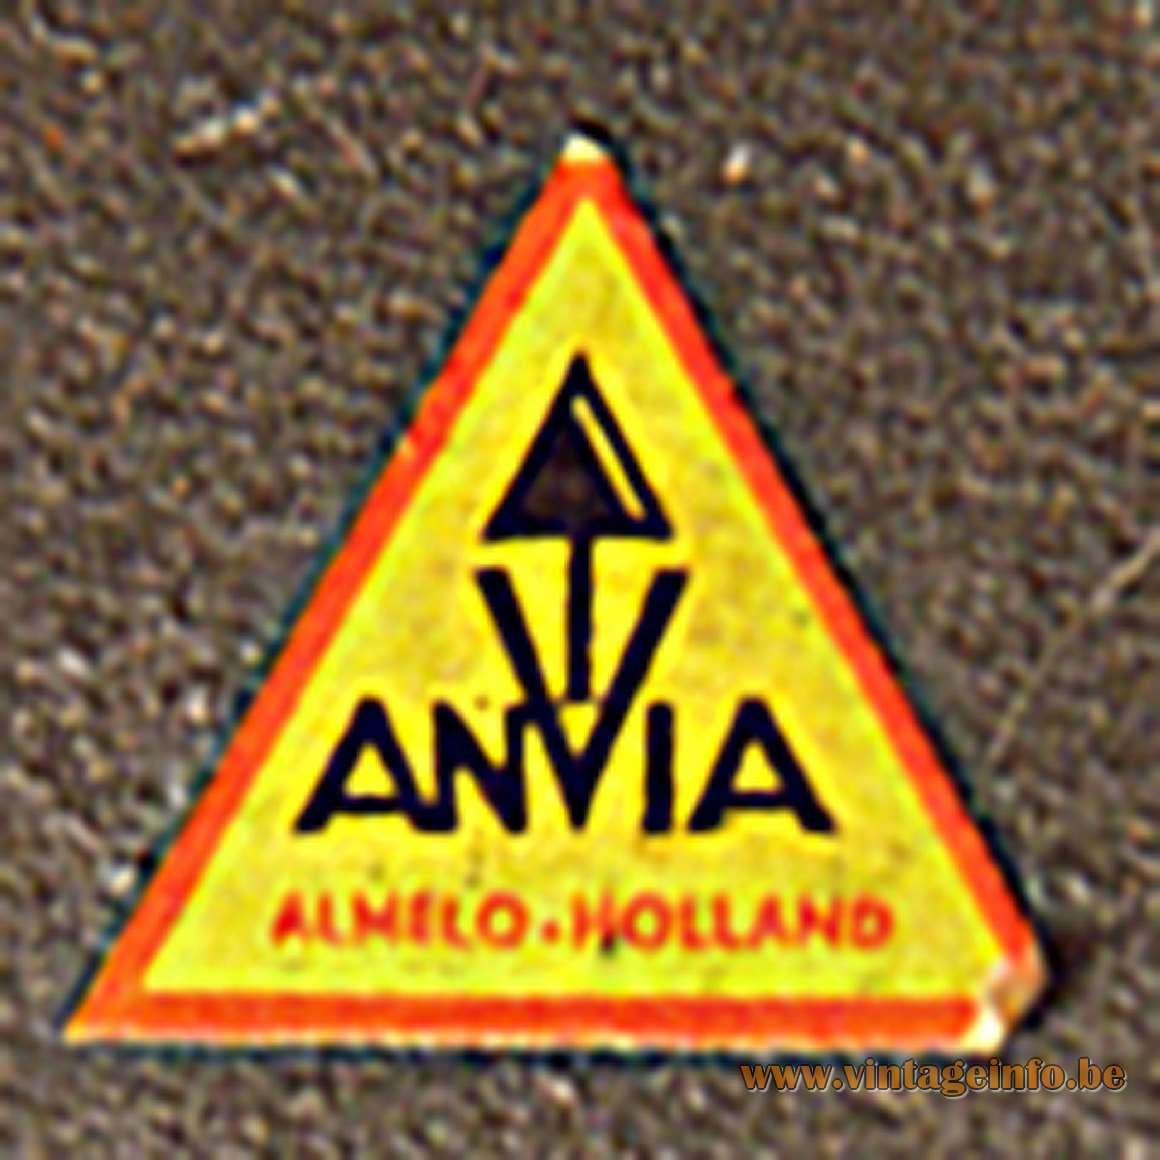 Anvia label & logo